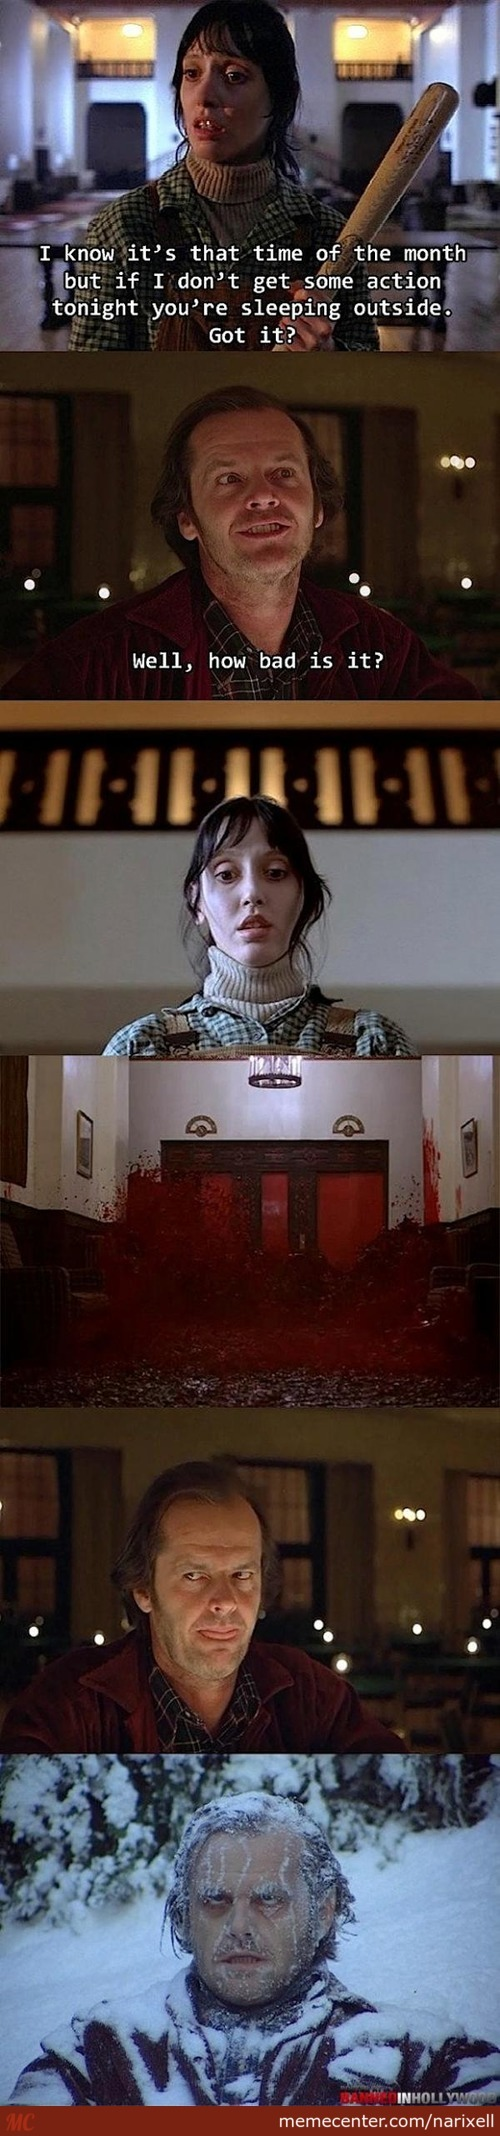 A Different Take On The Shining And The Reason For The Cold